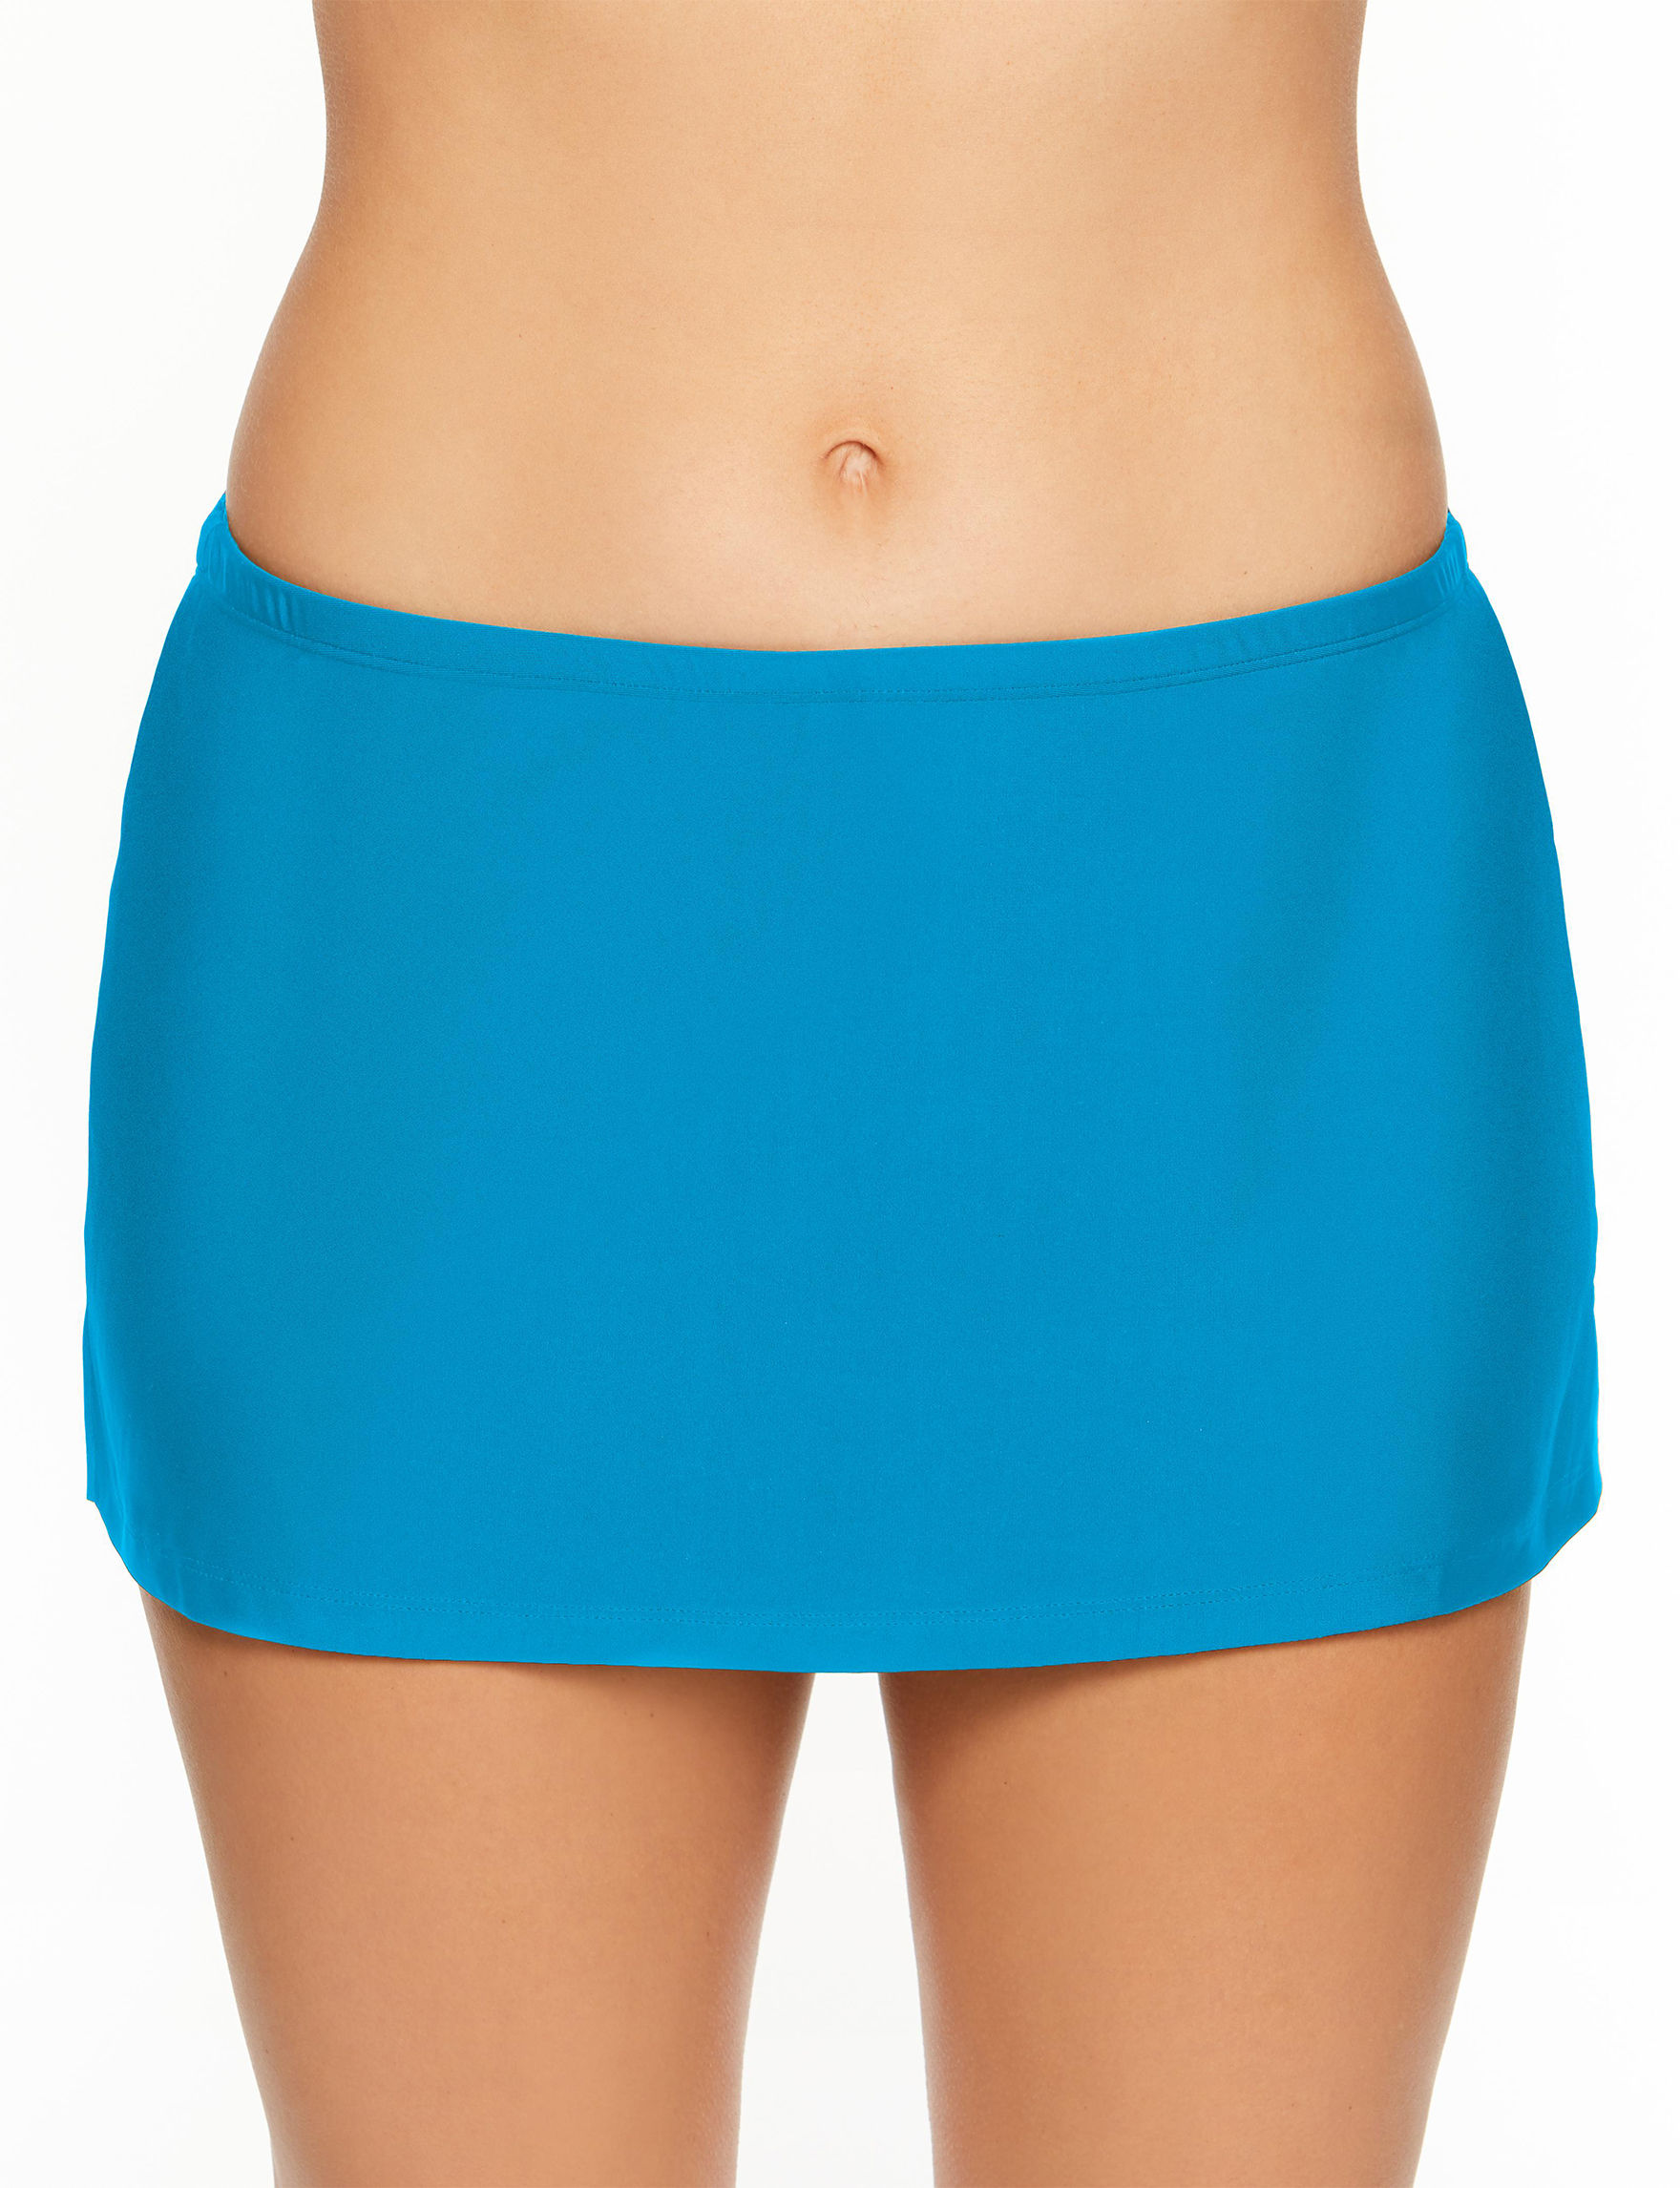 Aqua Couture Blue Swimsuit Bottoms Skirtini